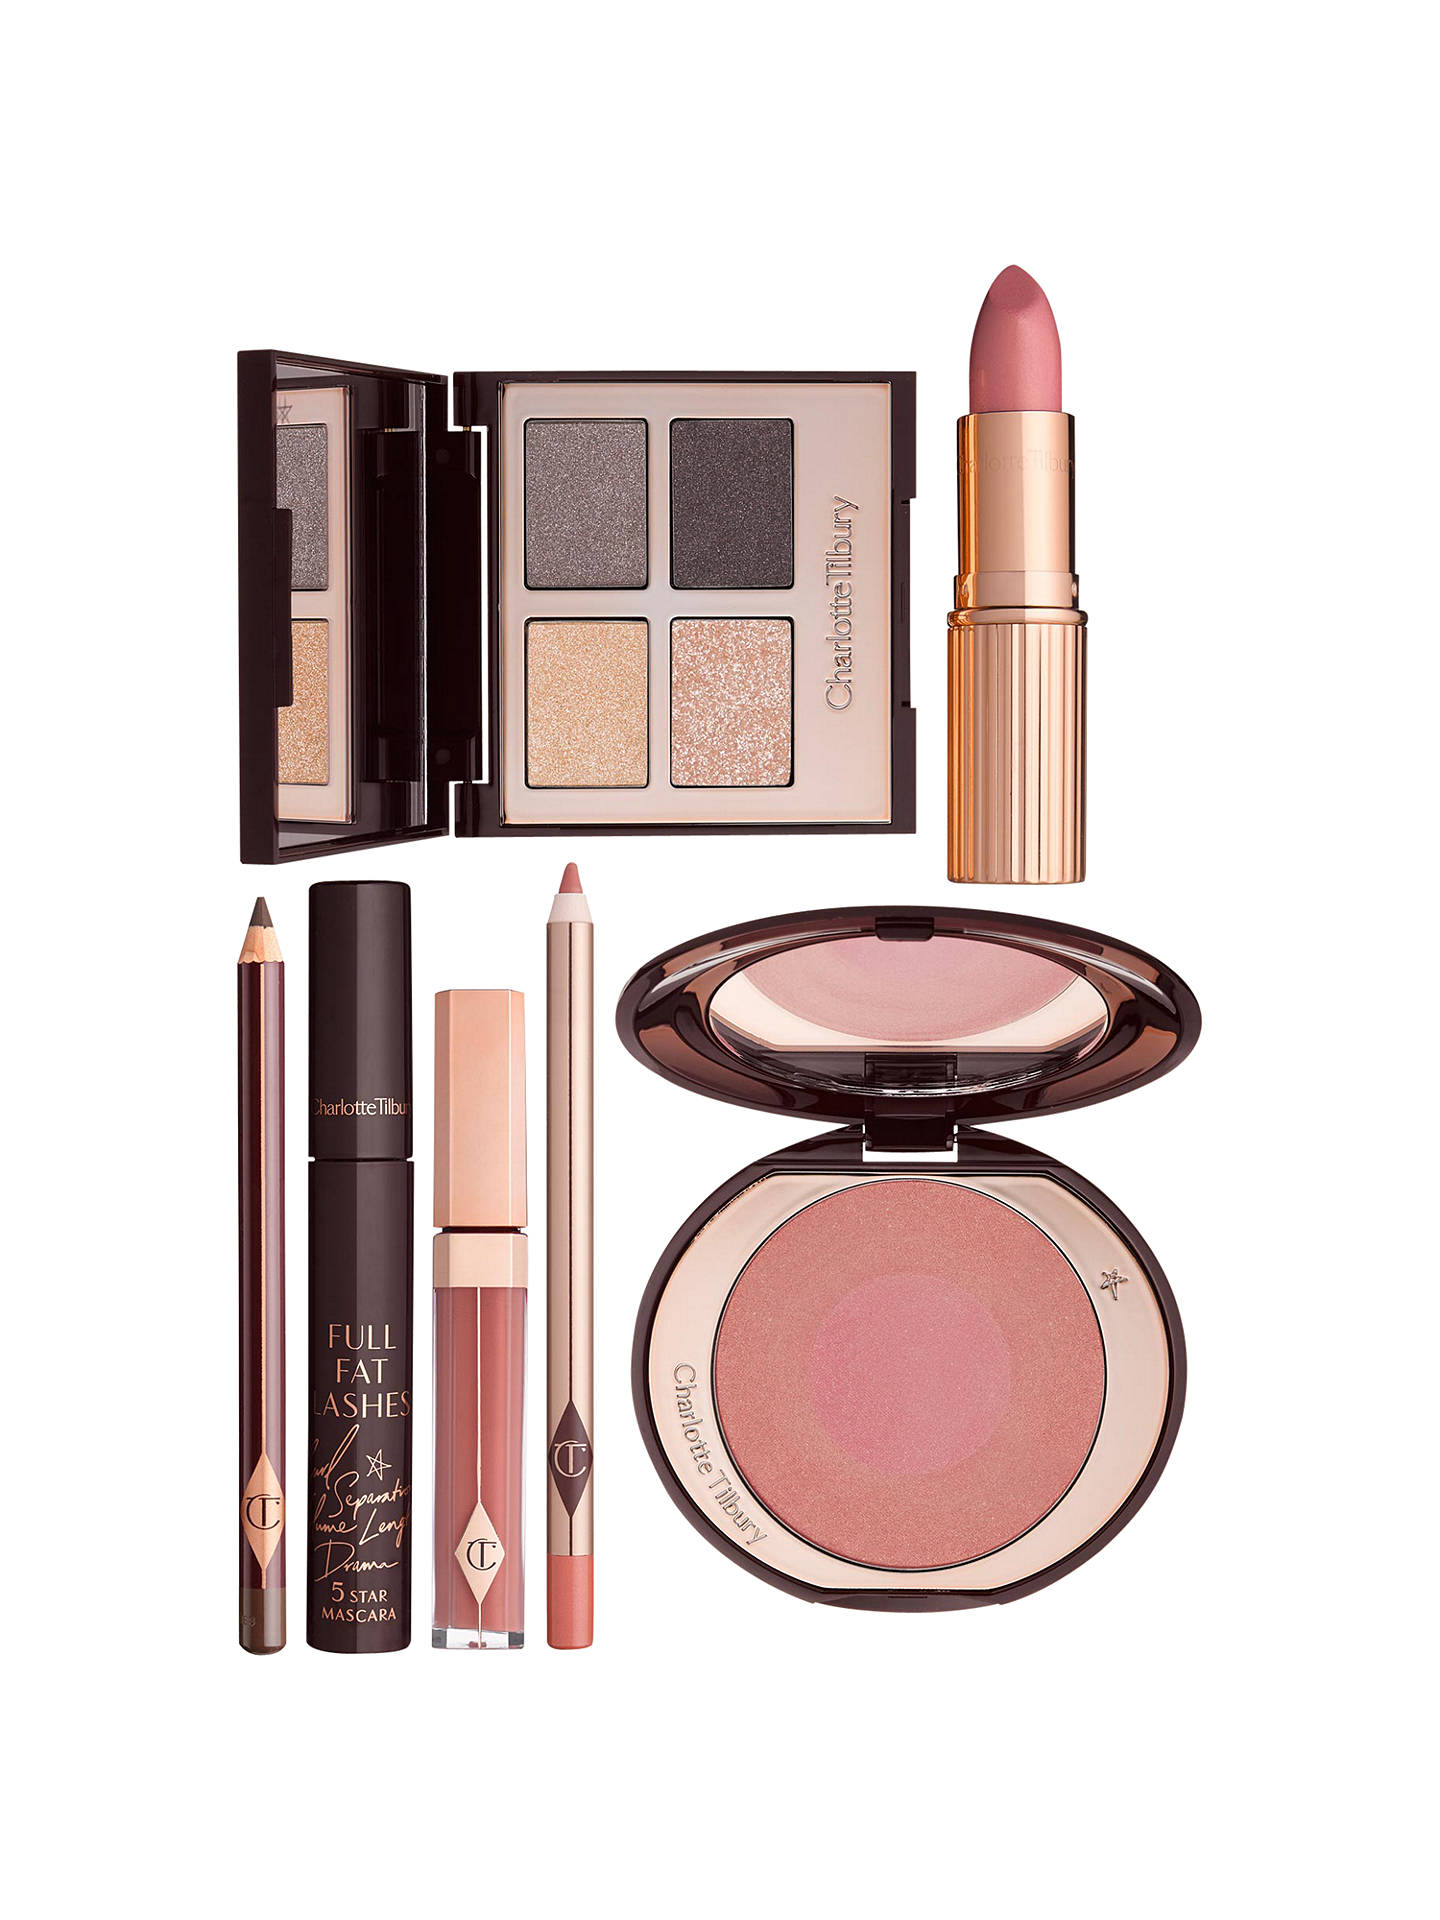 BuyCharlotte Tilbury The Uptown Girl Set Online at johnlewis.com